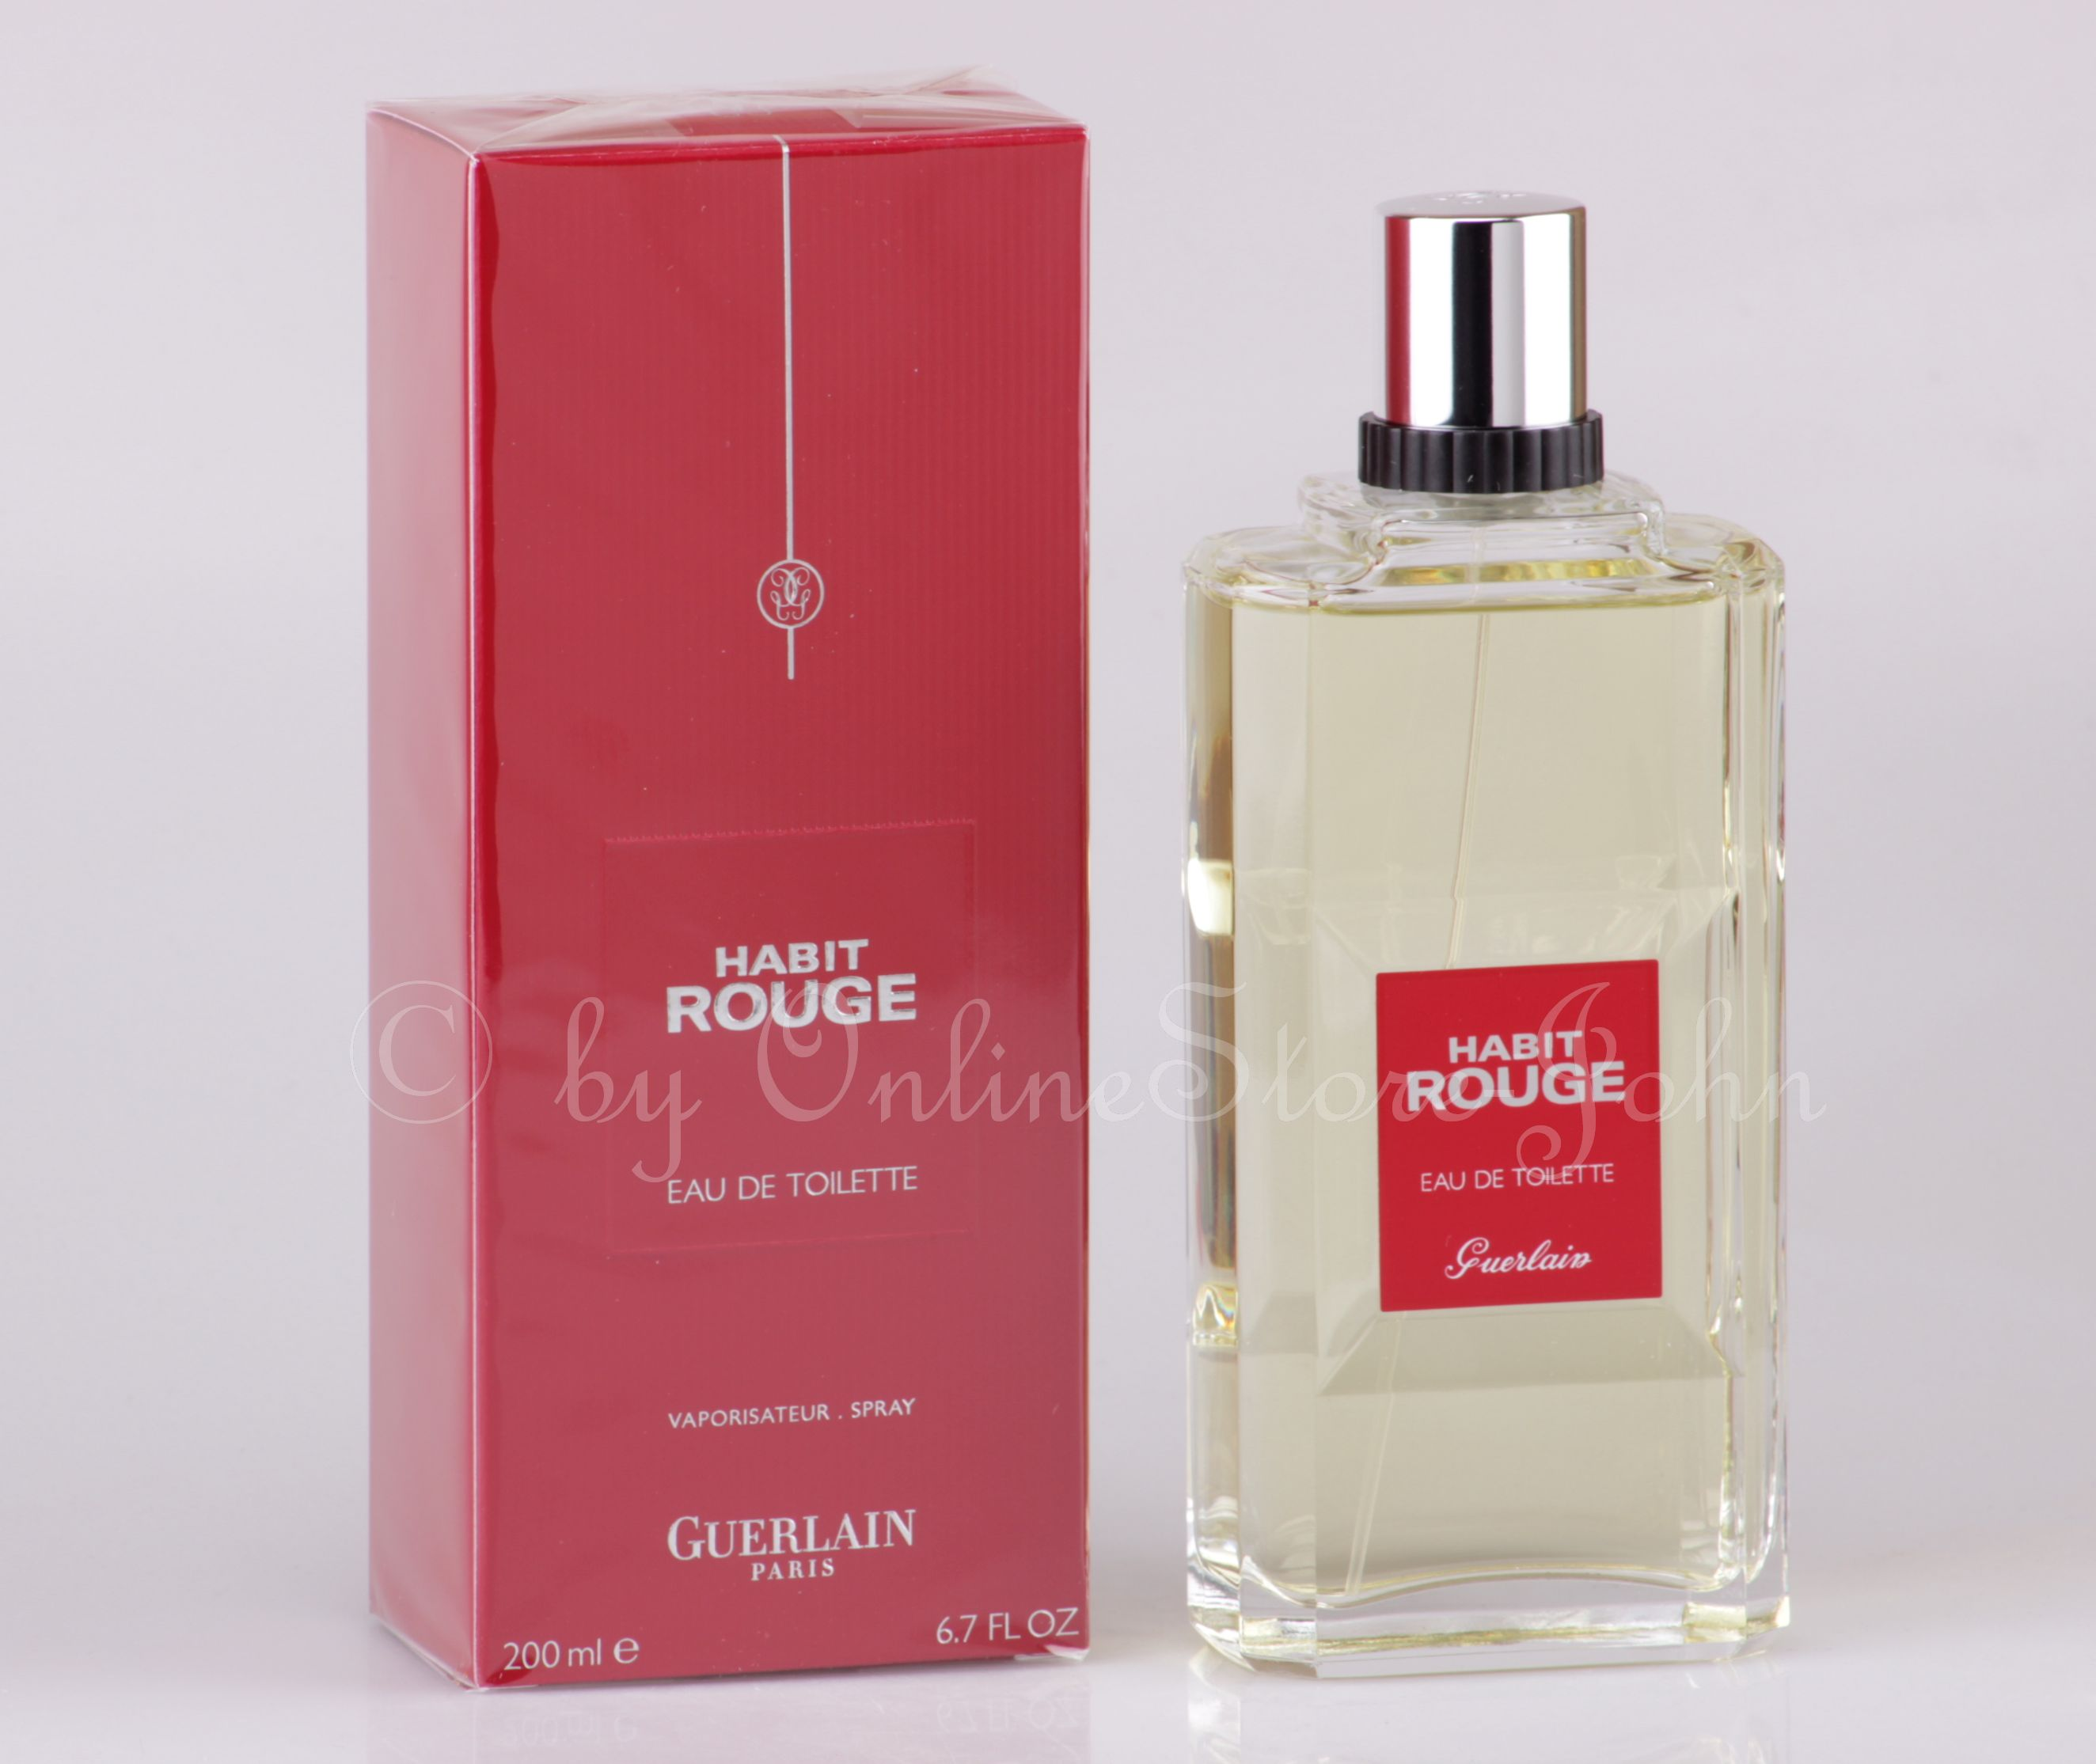 guerlain habit rouge 200ml edt eau de toilette. Black Bedroom Furniture Sets. Home Design Ideas